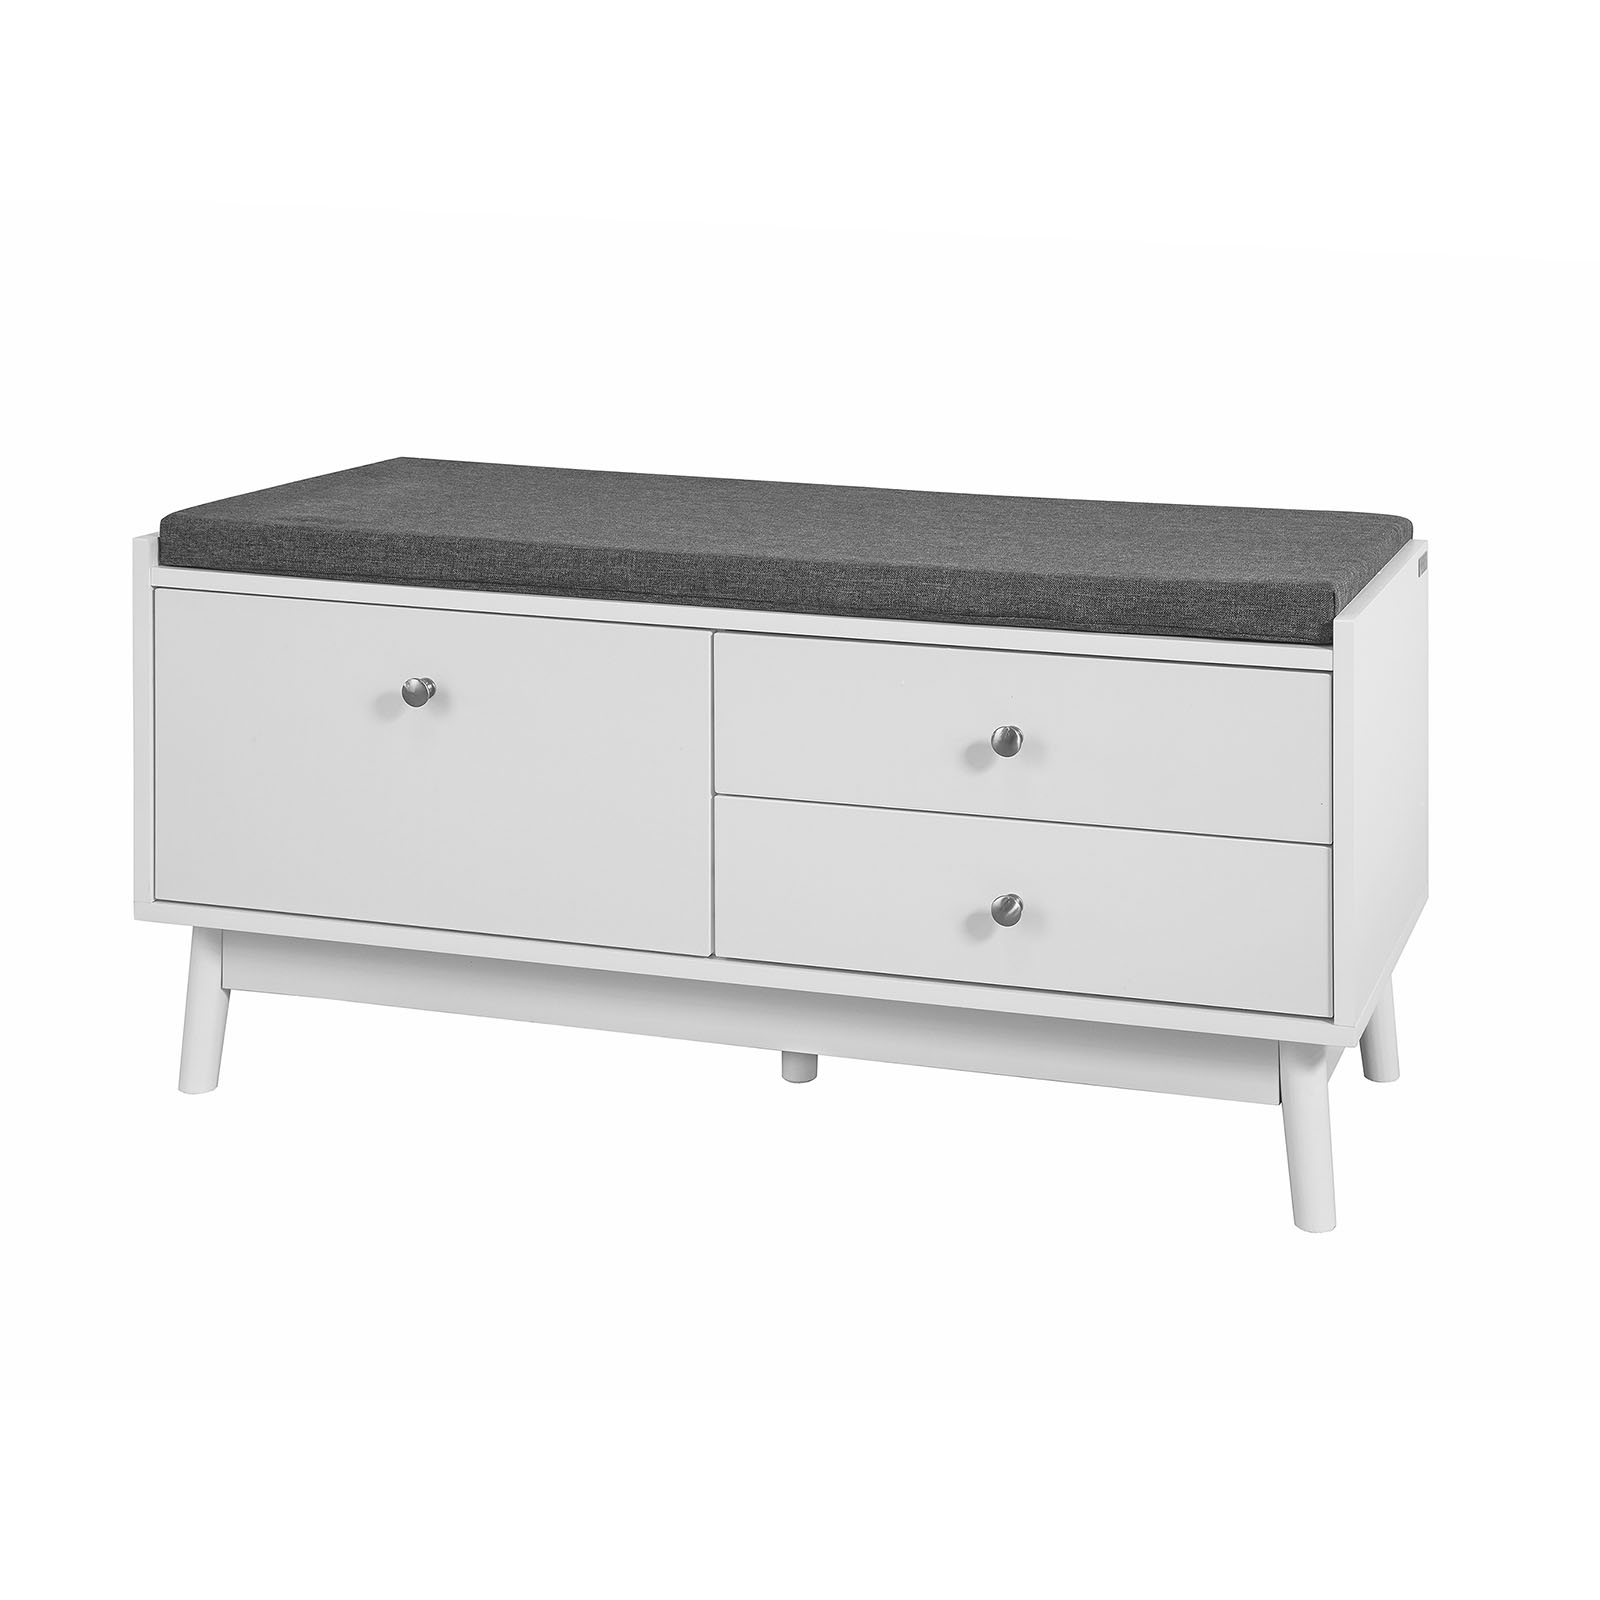 Haotian FSR56 W,White, Storage Bench With 3 Drawers U0026 Padded Seat Cushion